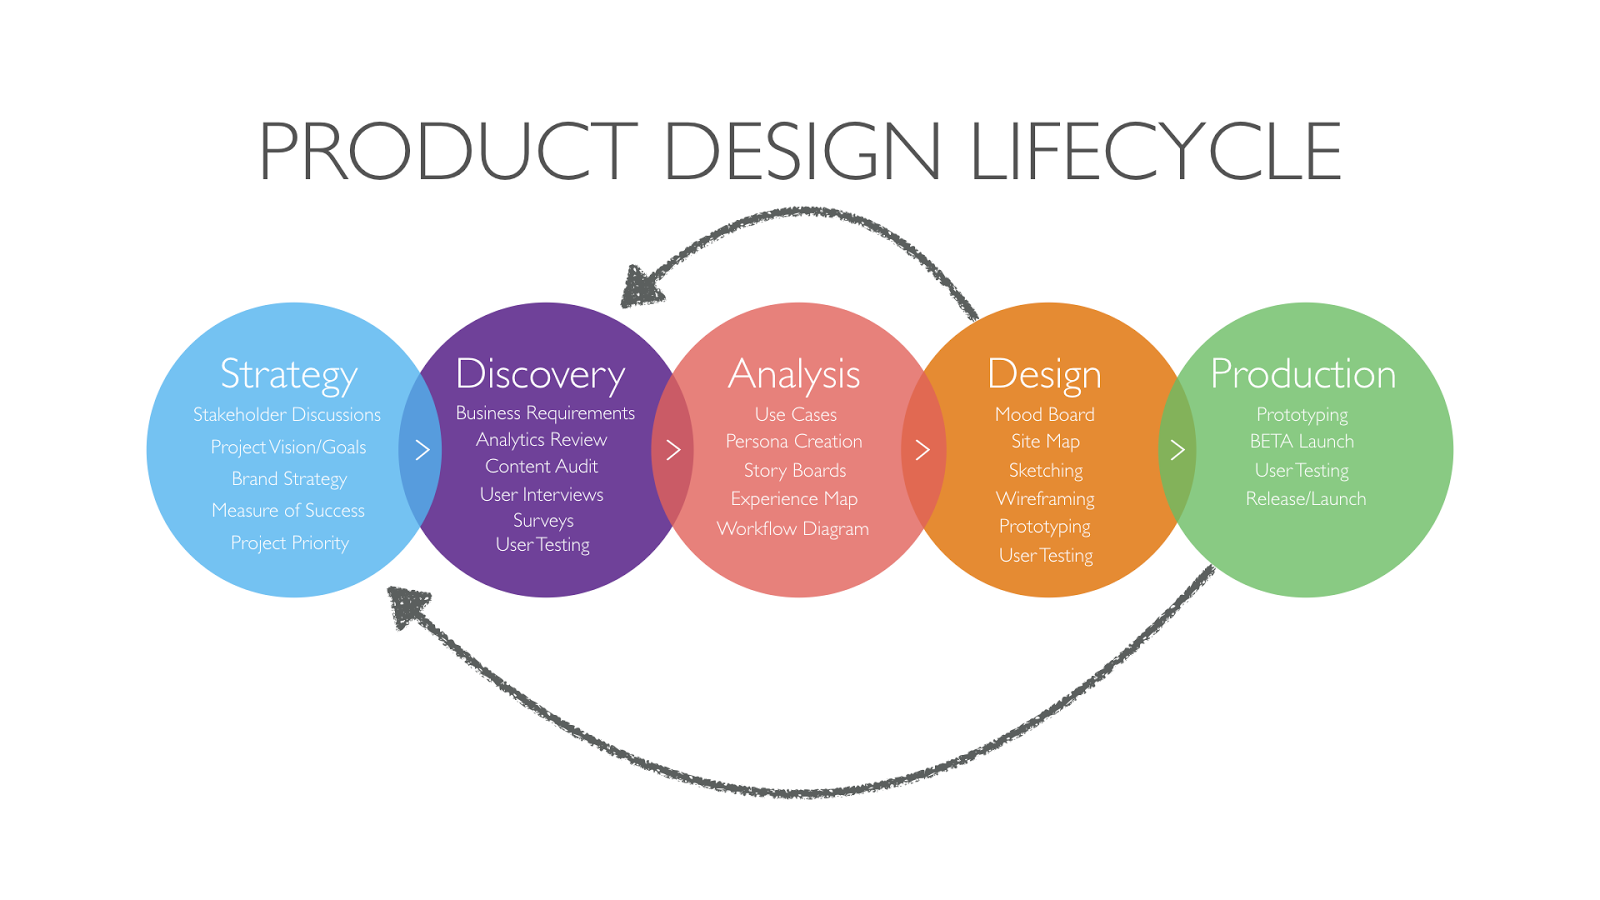 Product Design Playbook Concepts And Methodologies To Live By By Matthew Voshell Ux Collective